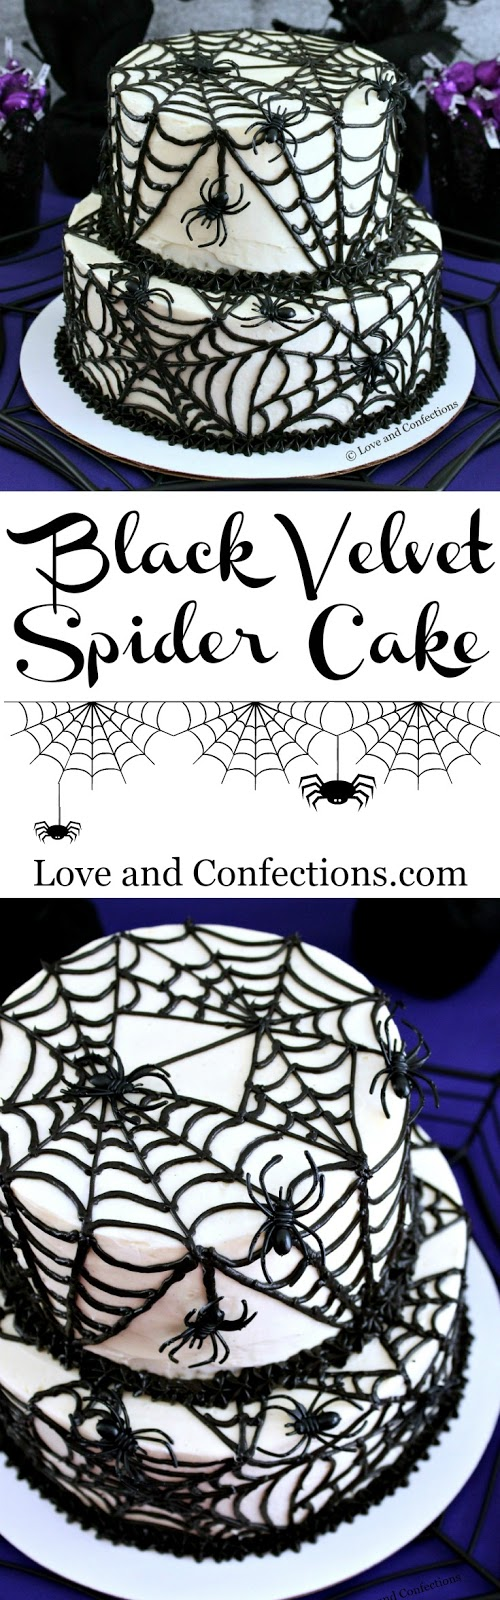 Love and Confections: Black Velvet Spider Cake